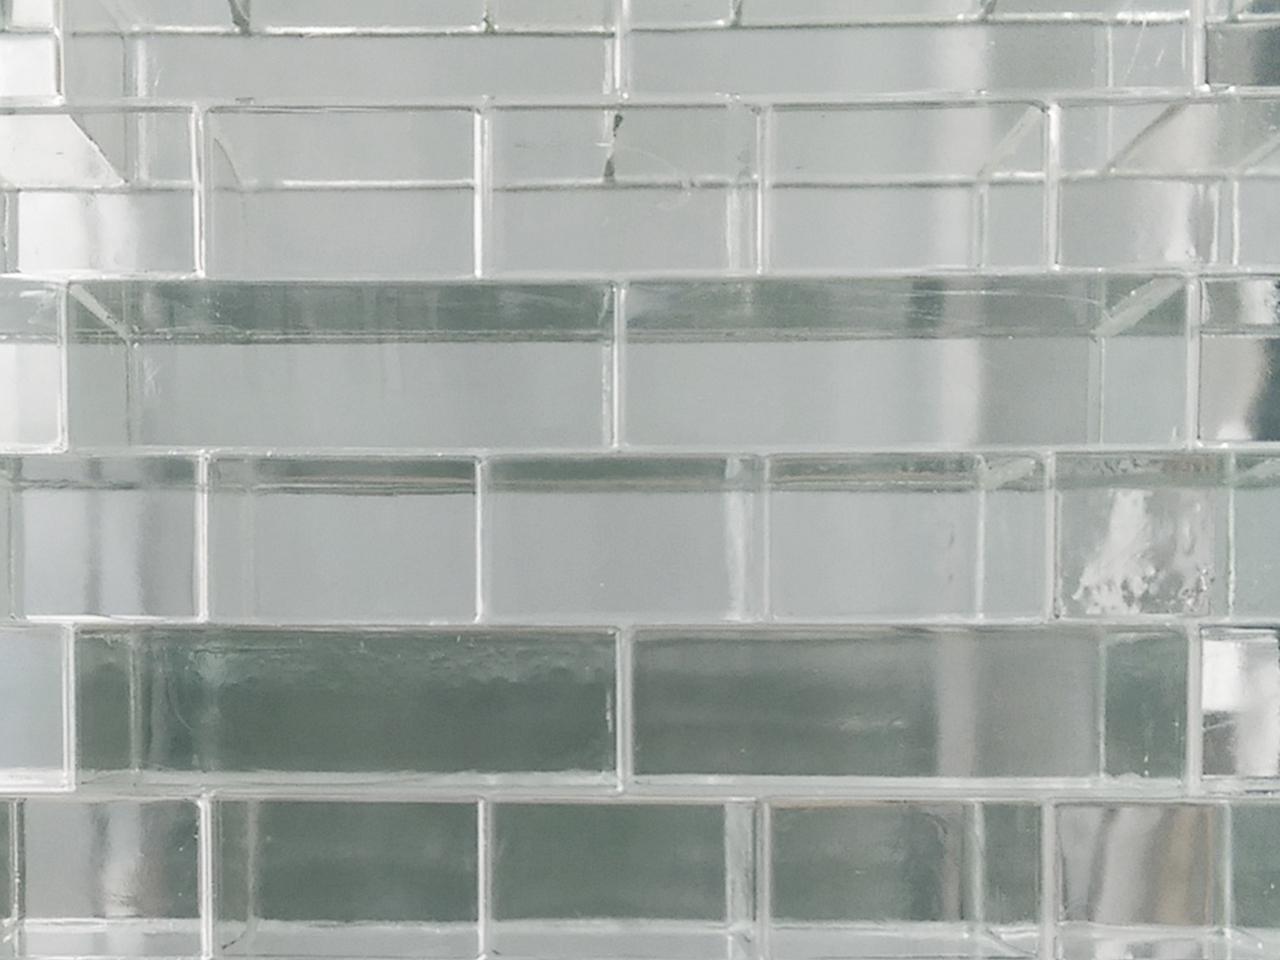 Mvrdv wall of glass bricks designed by mvrdv featured in for Glass bricks designs